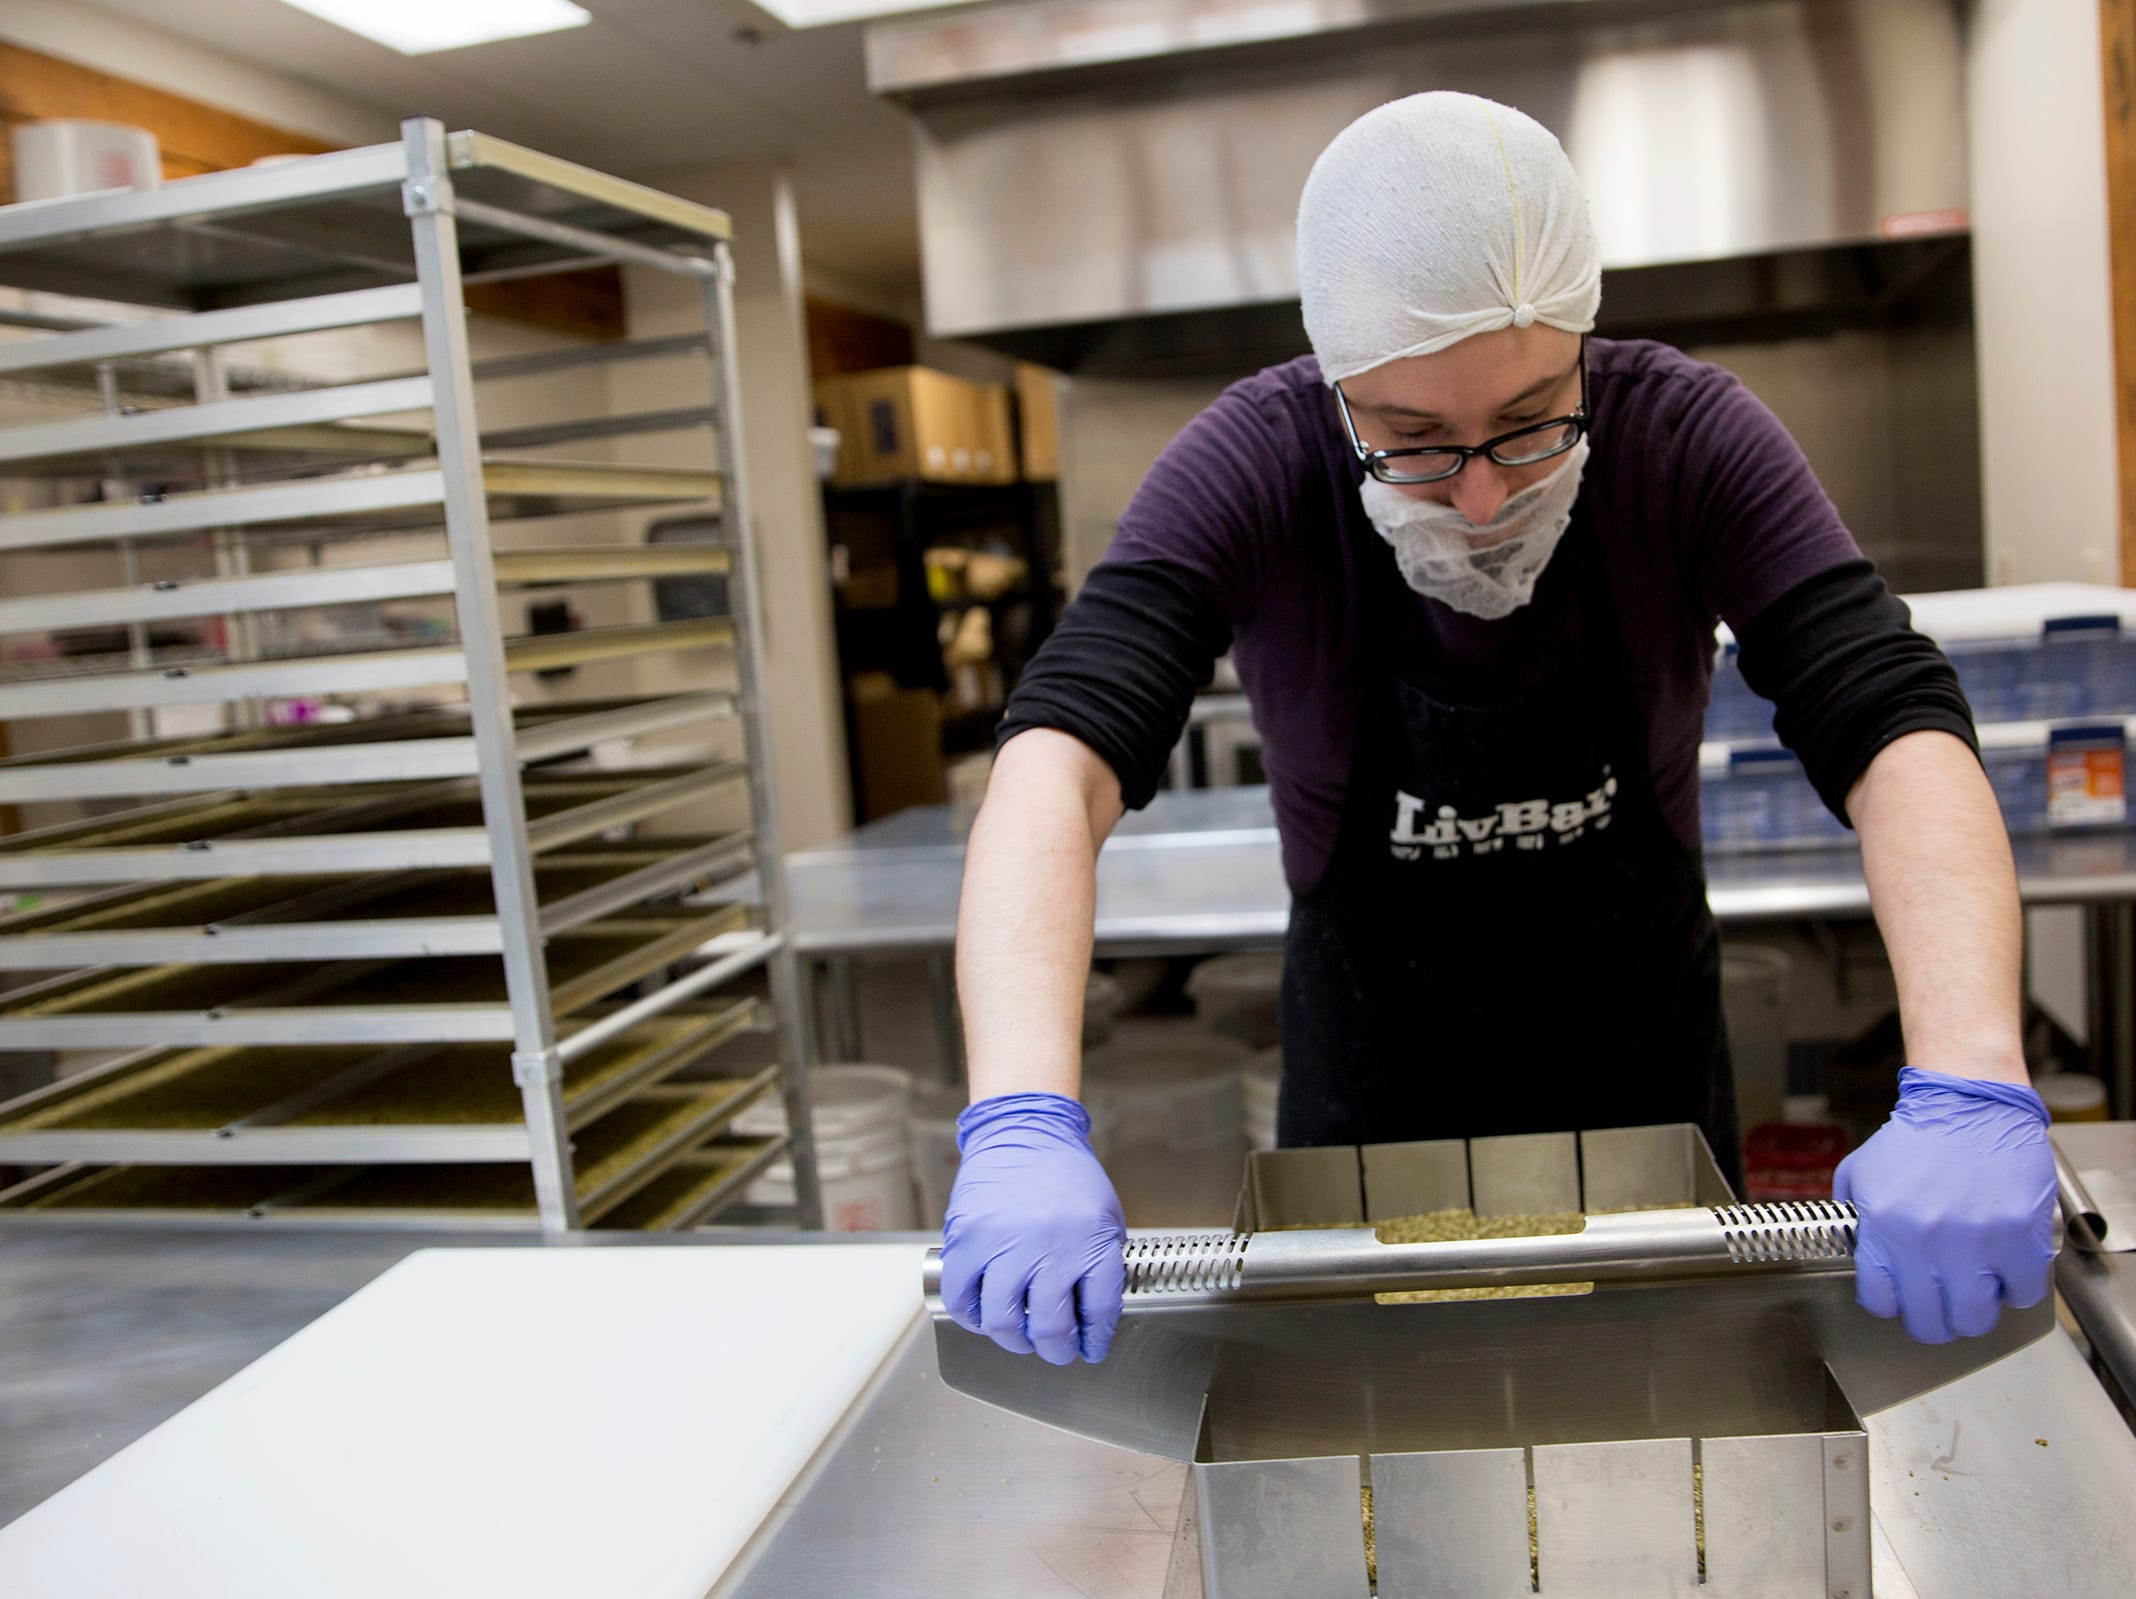 Kitchen manager Aldo Arevalo cuts into a sheet of raspberry kale maca-flavored LivBar energy bars in their kitchen in downtown Salem on Wednesday, Feb. 20, 2019.